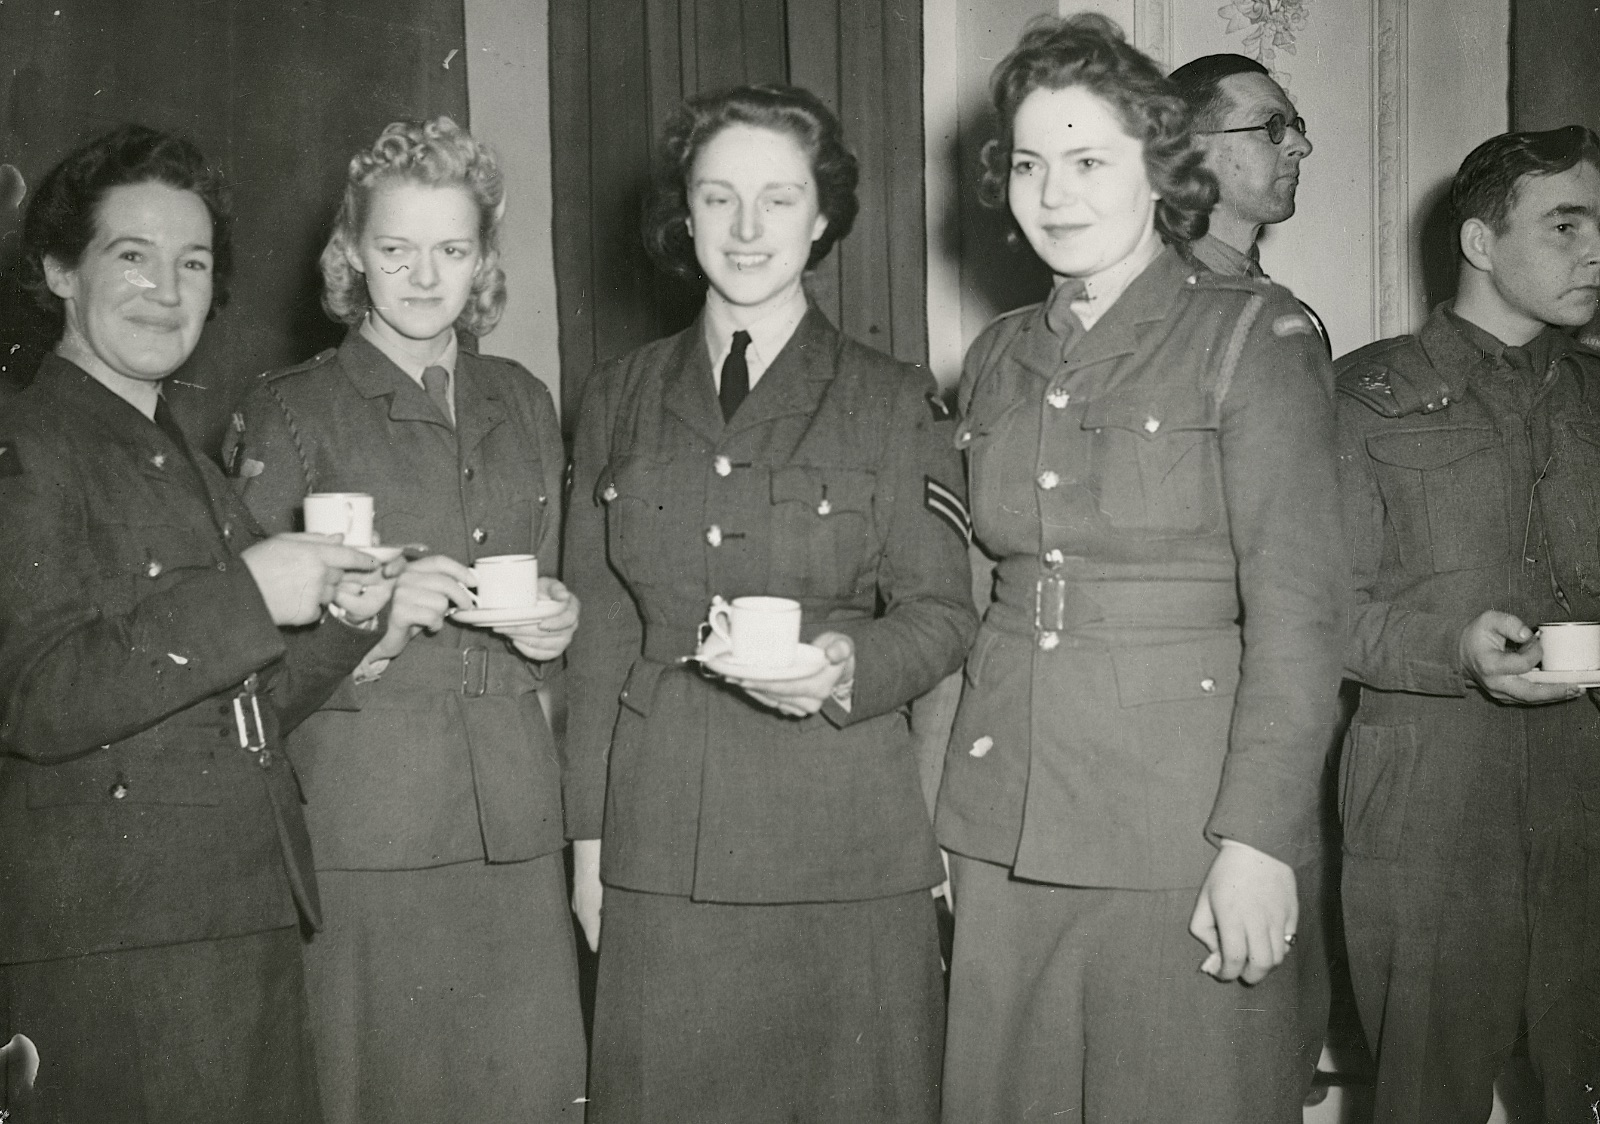 On 22 December 1942, the Danish Minister, in London, Count E. Reventlow and his wife gave a reception for Danish volunteers at the Danish House in Pond Street. From left it is Mary Kraul, an unidentified A.T.S, Cpl Gerda Gormsen Hansen, and another unidentified A.T.S. (Museum of Danish Resistance)